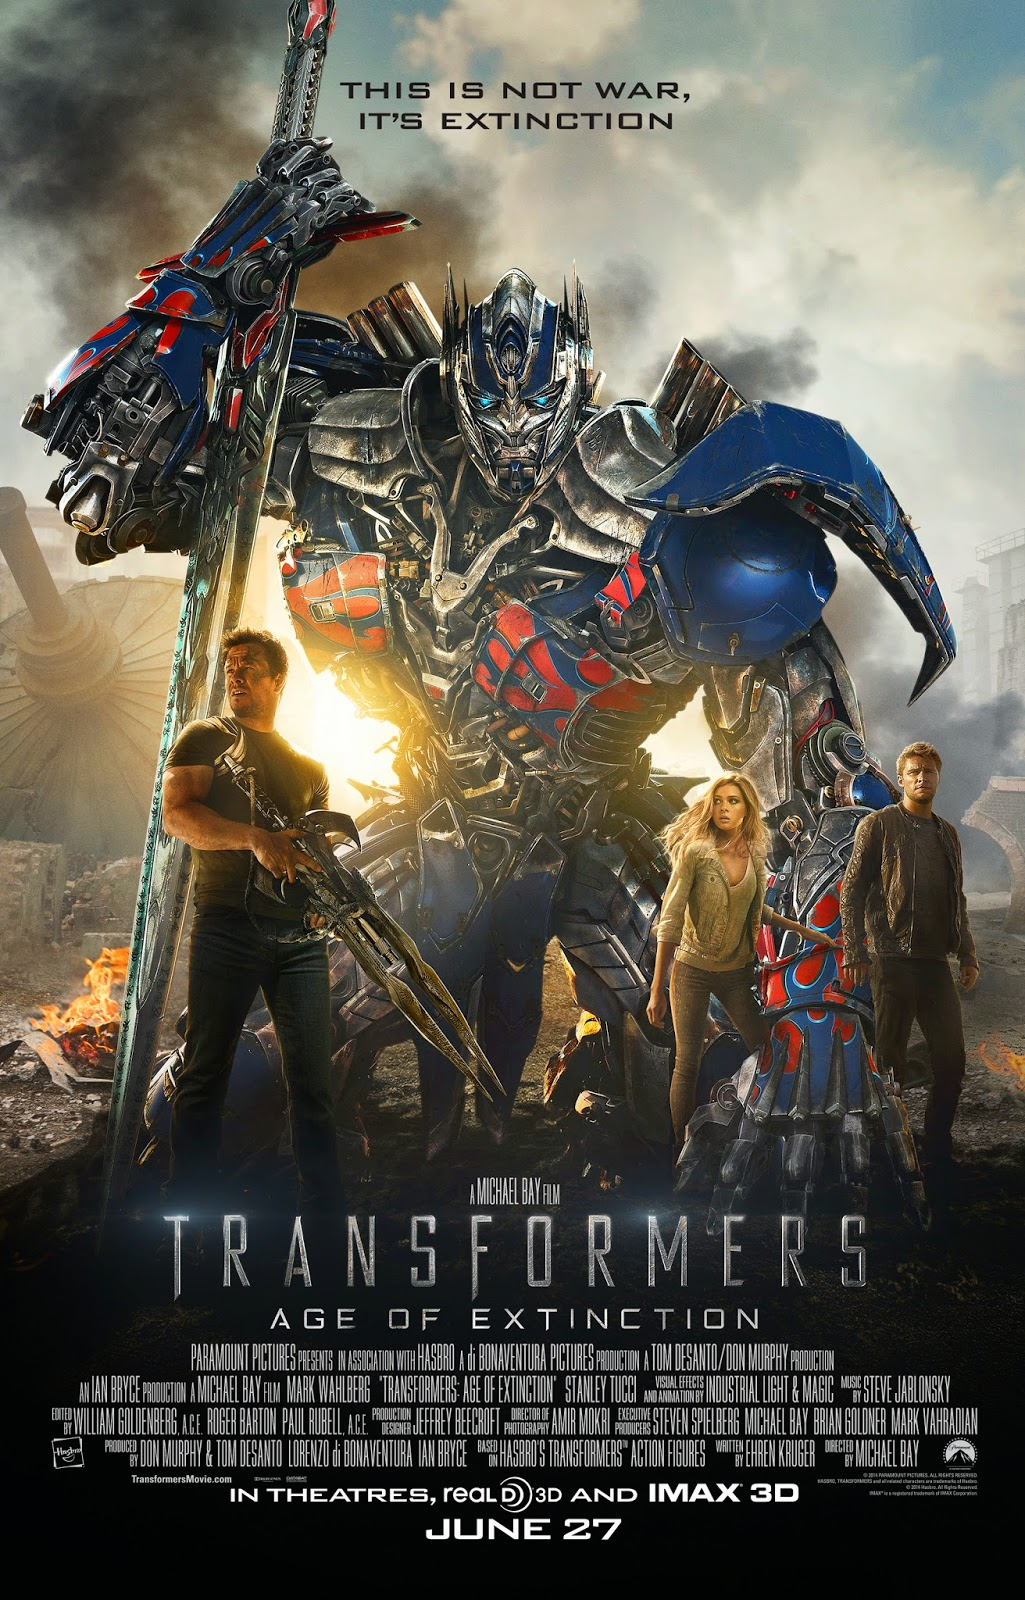 Official Poster for Transformers: Age of Extinction